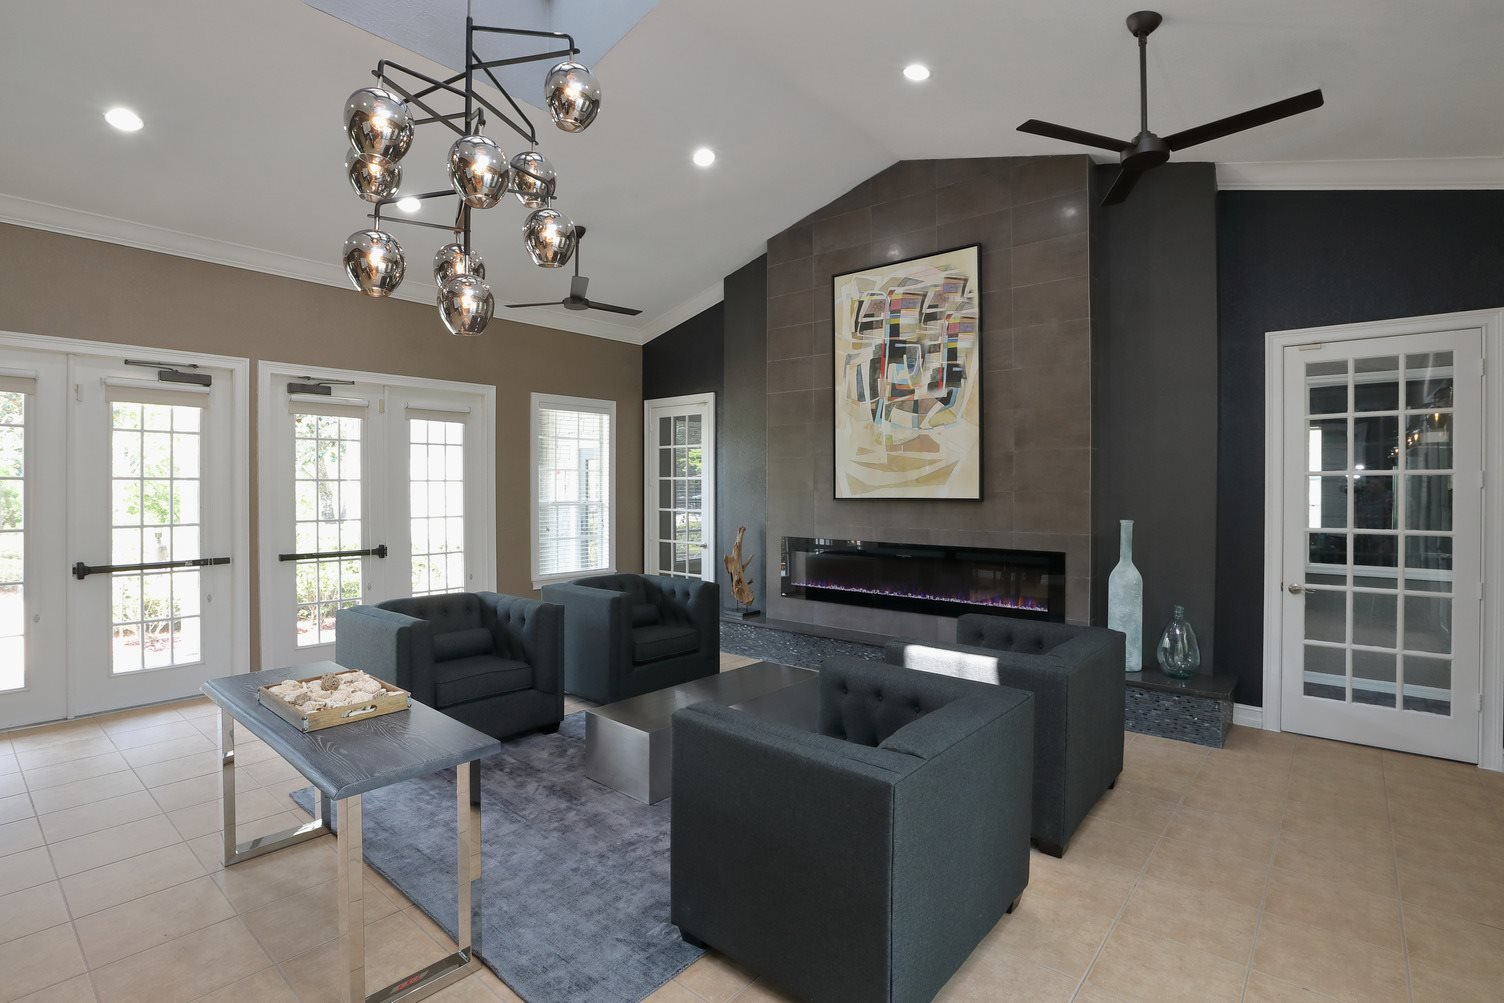 The Resident Lounge is a big room with a contemporary design. The far wall shows a large painting artwork above a fireplace. Four dark chairs are sat around a small table in front of french doors.